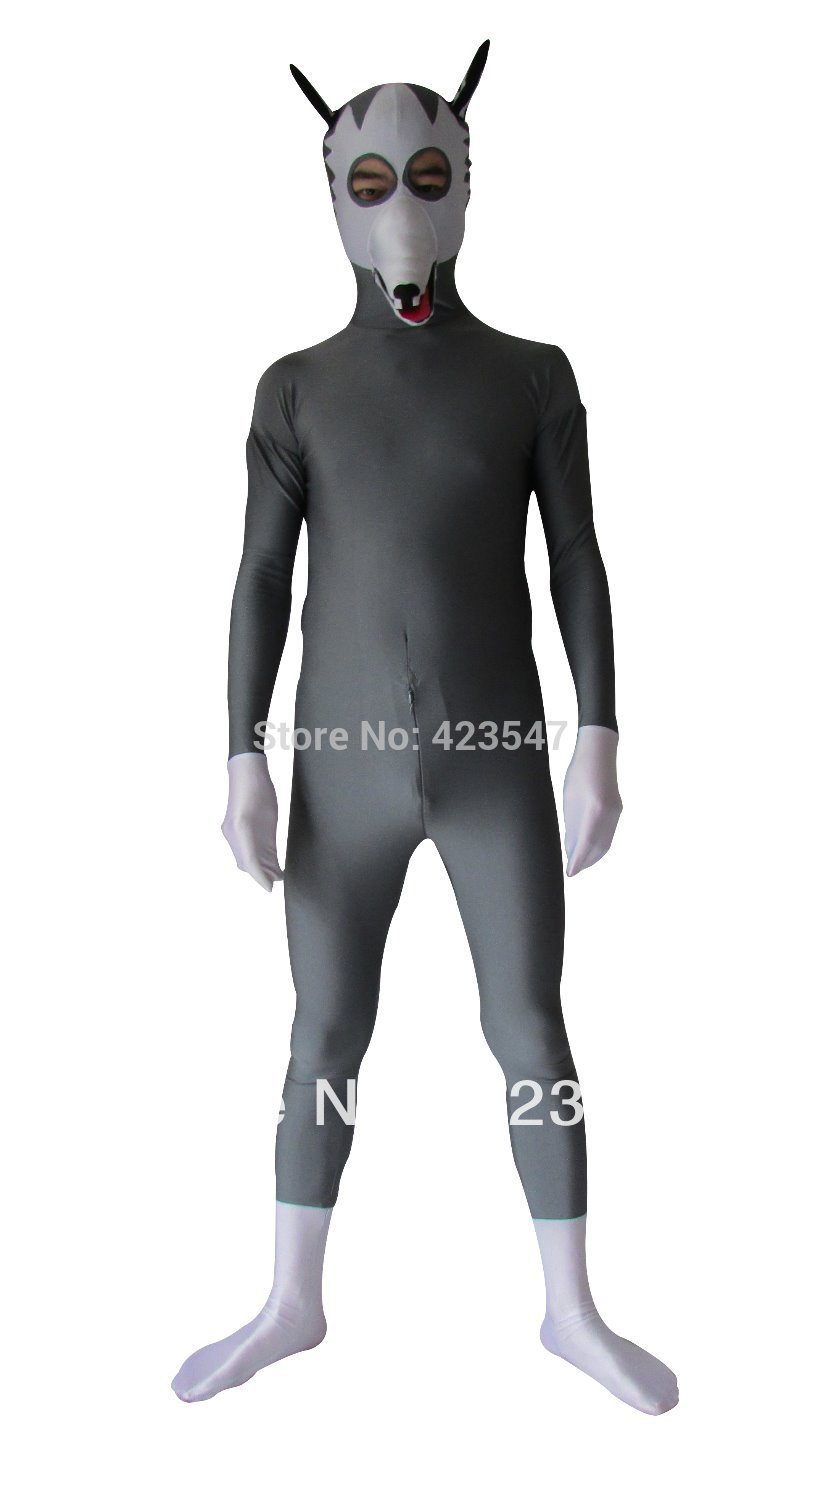 Halloween cospaly gray and white dog playing zentai lycra costume party